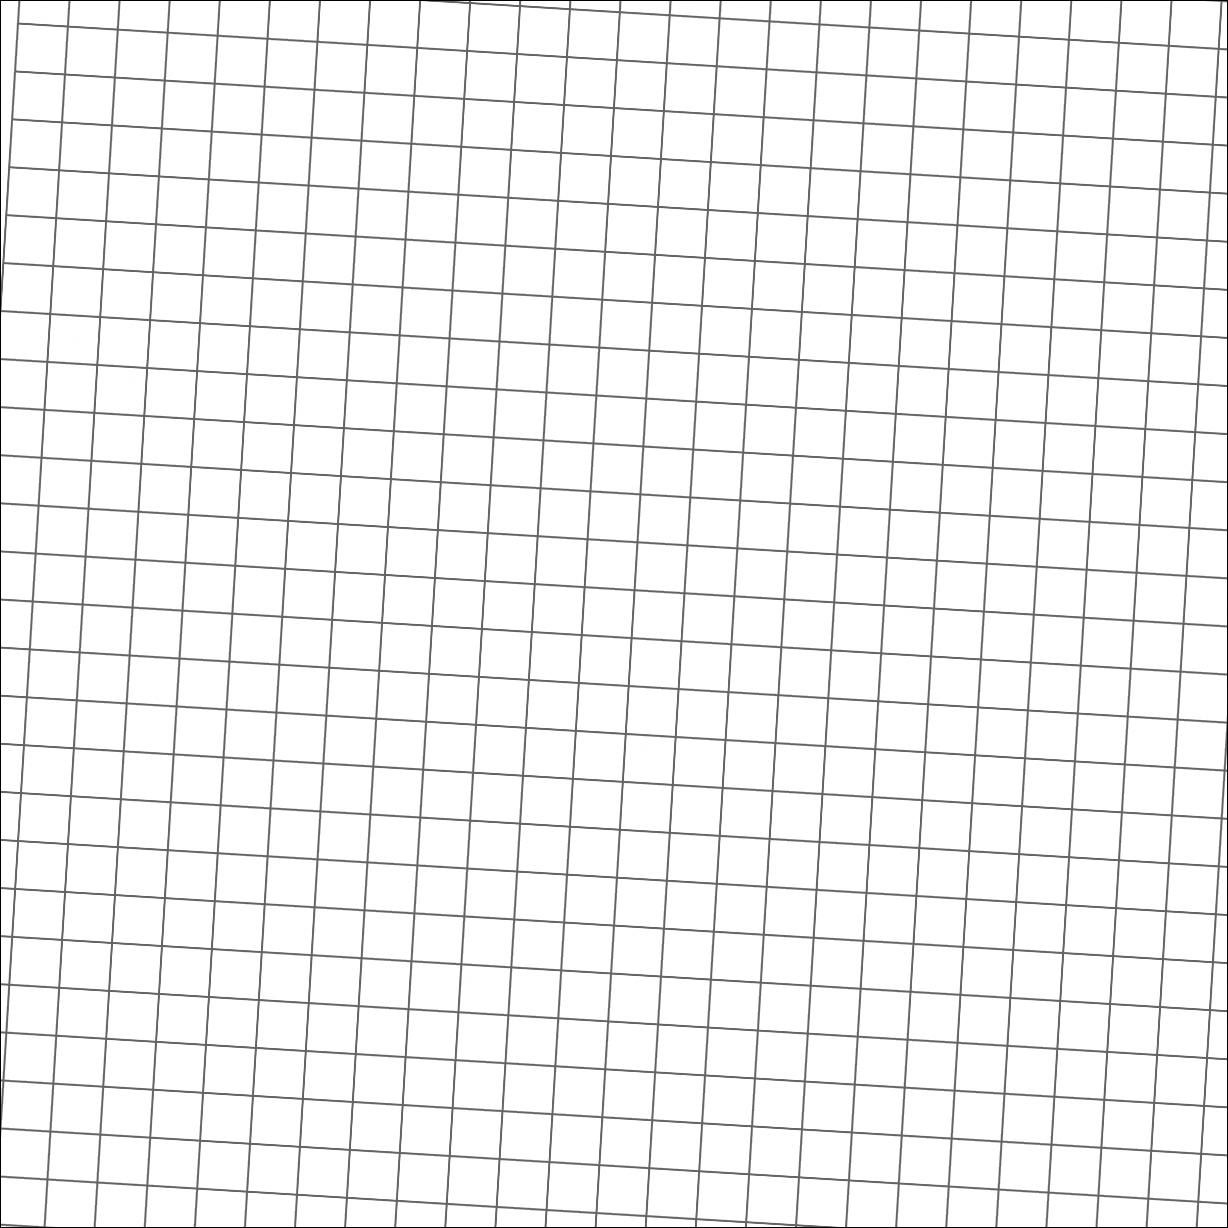 Free printable graph paper! Blank standard and metric